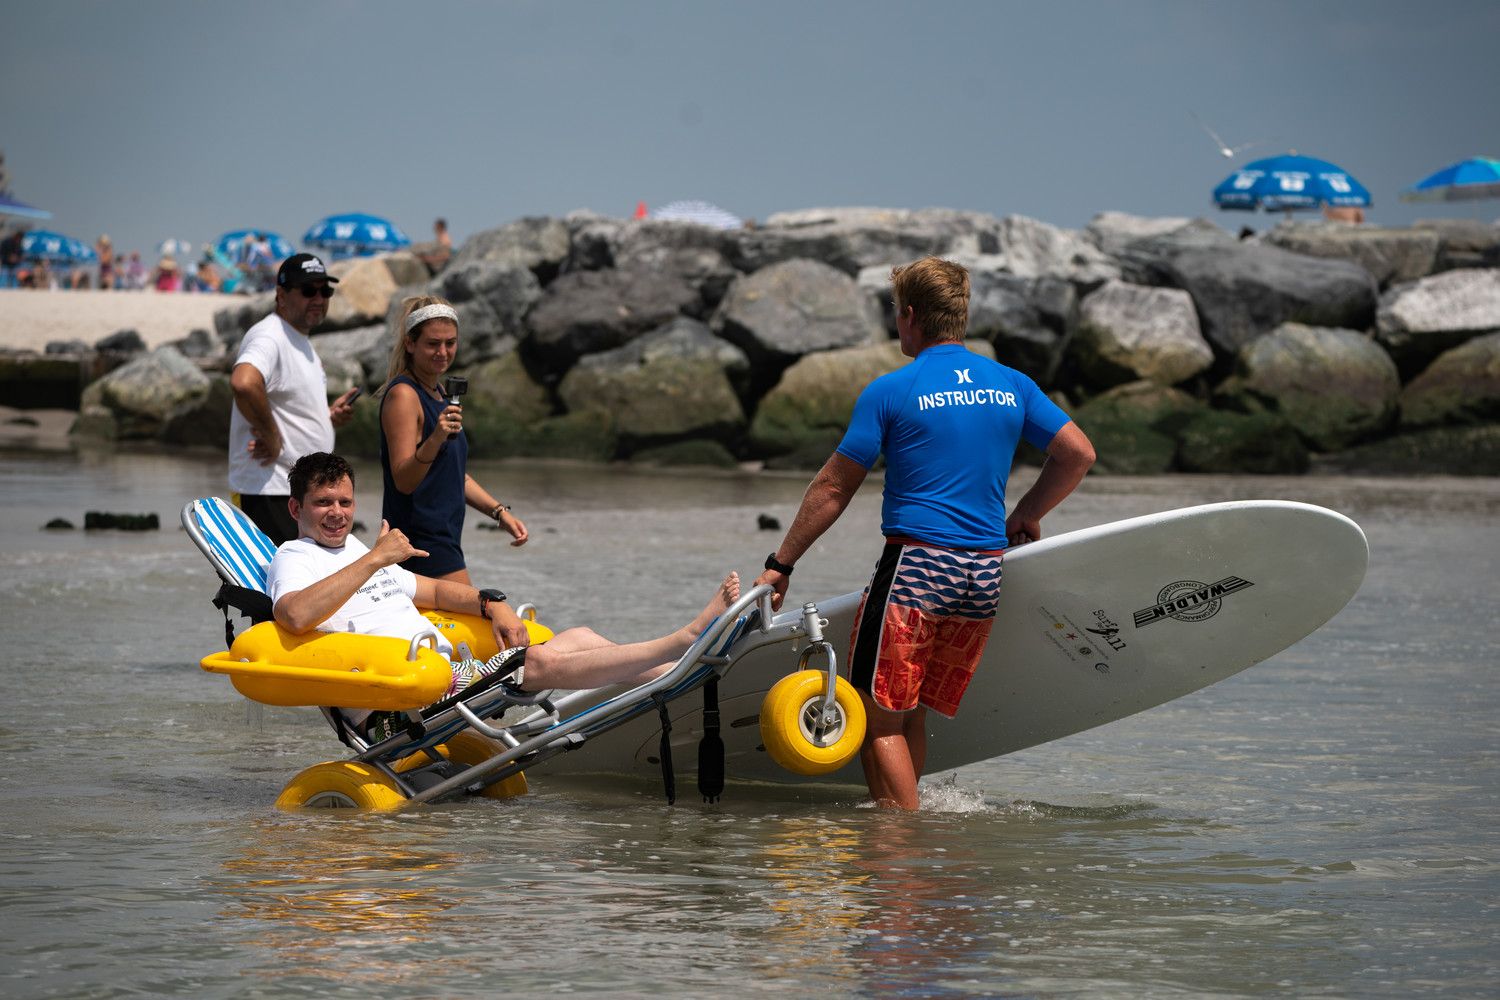 Hofstra University professor and Surf for All athlete Adam Halpern entered the surf with Cliff at the annual outing.